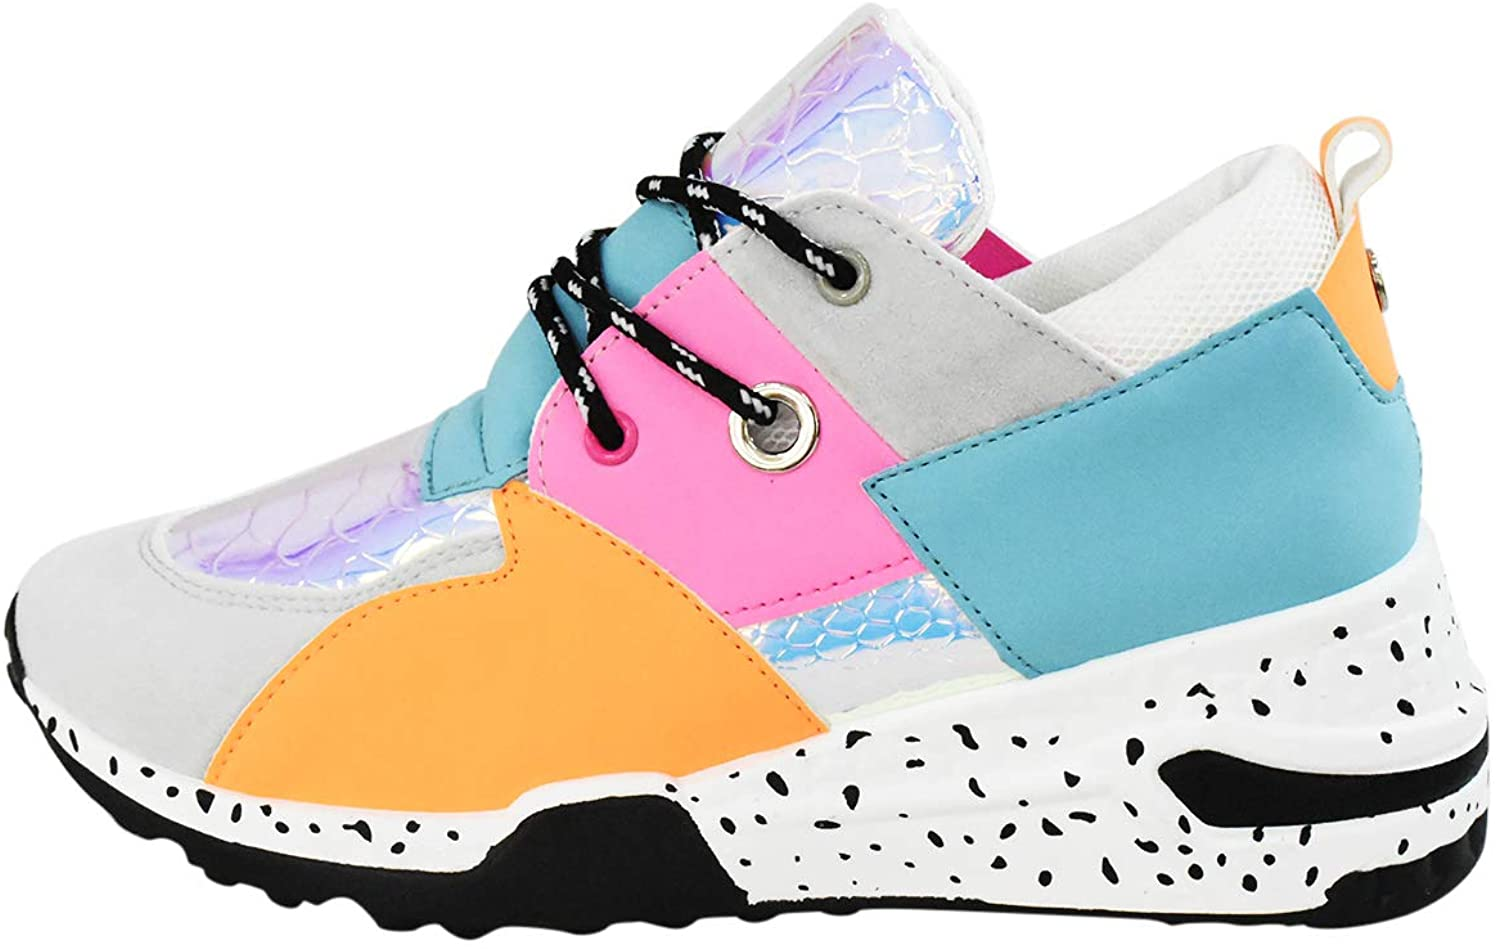 LUCKY-STEP Women Breathable High quality Max 71% OFF Mesh Non-Sl Fashion Sneakers Leopard